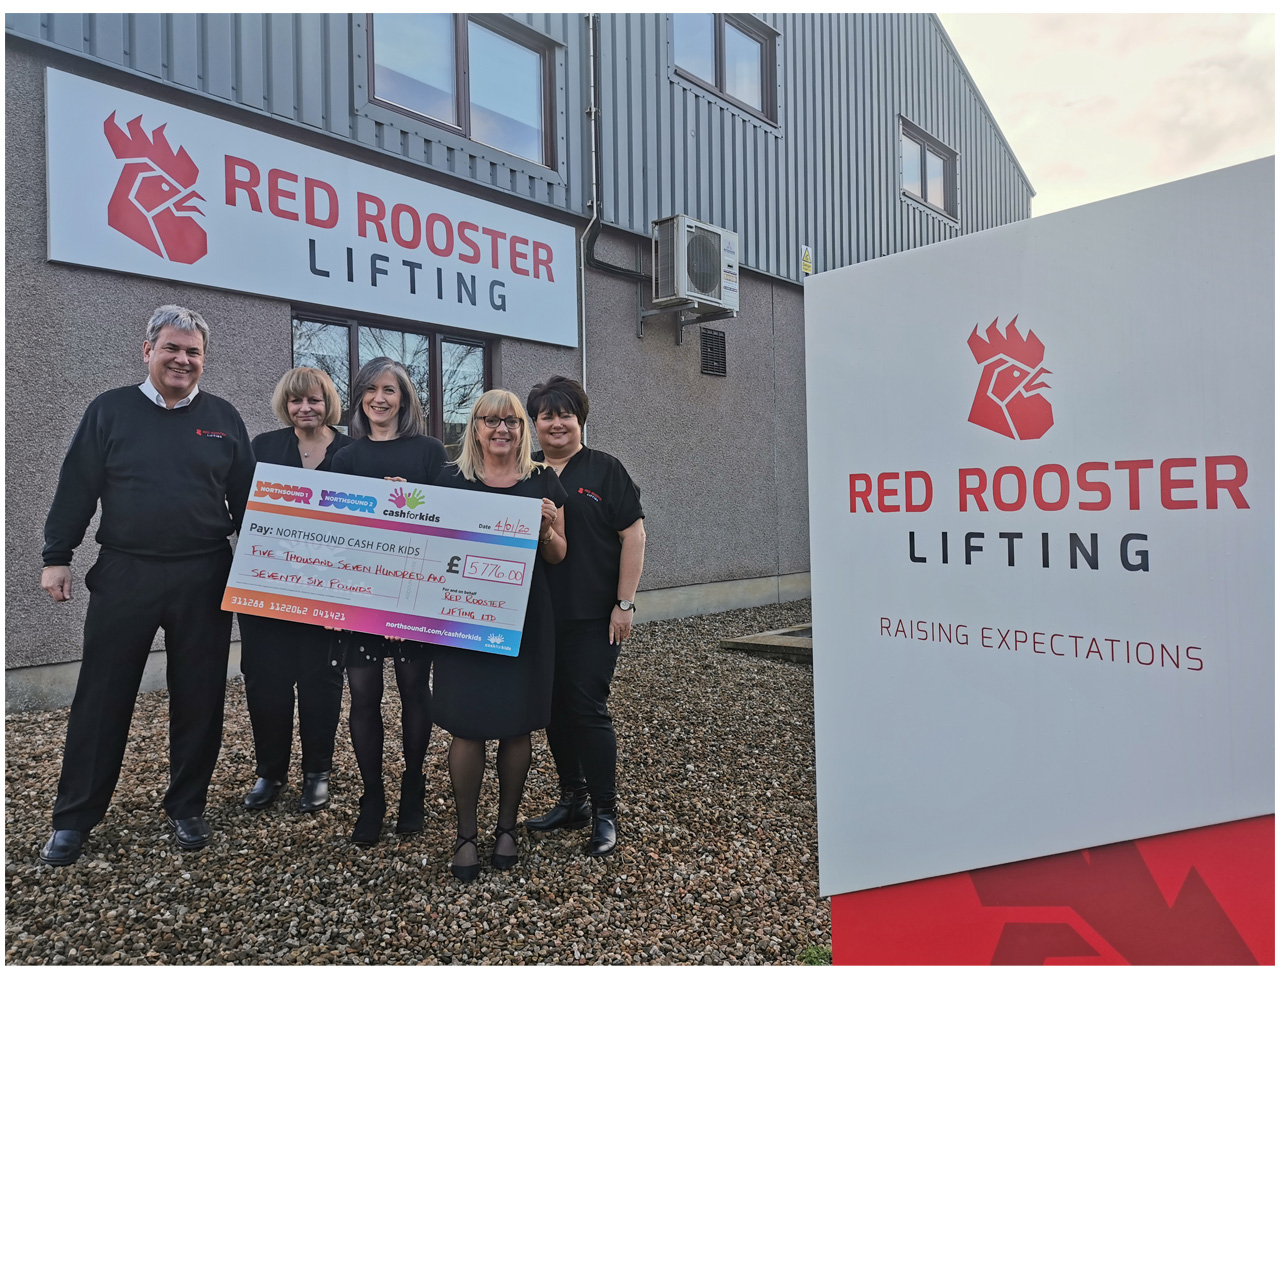 Aberdeenshire lifting company raise money for local children's charity